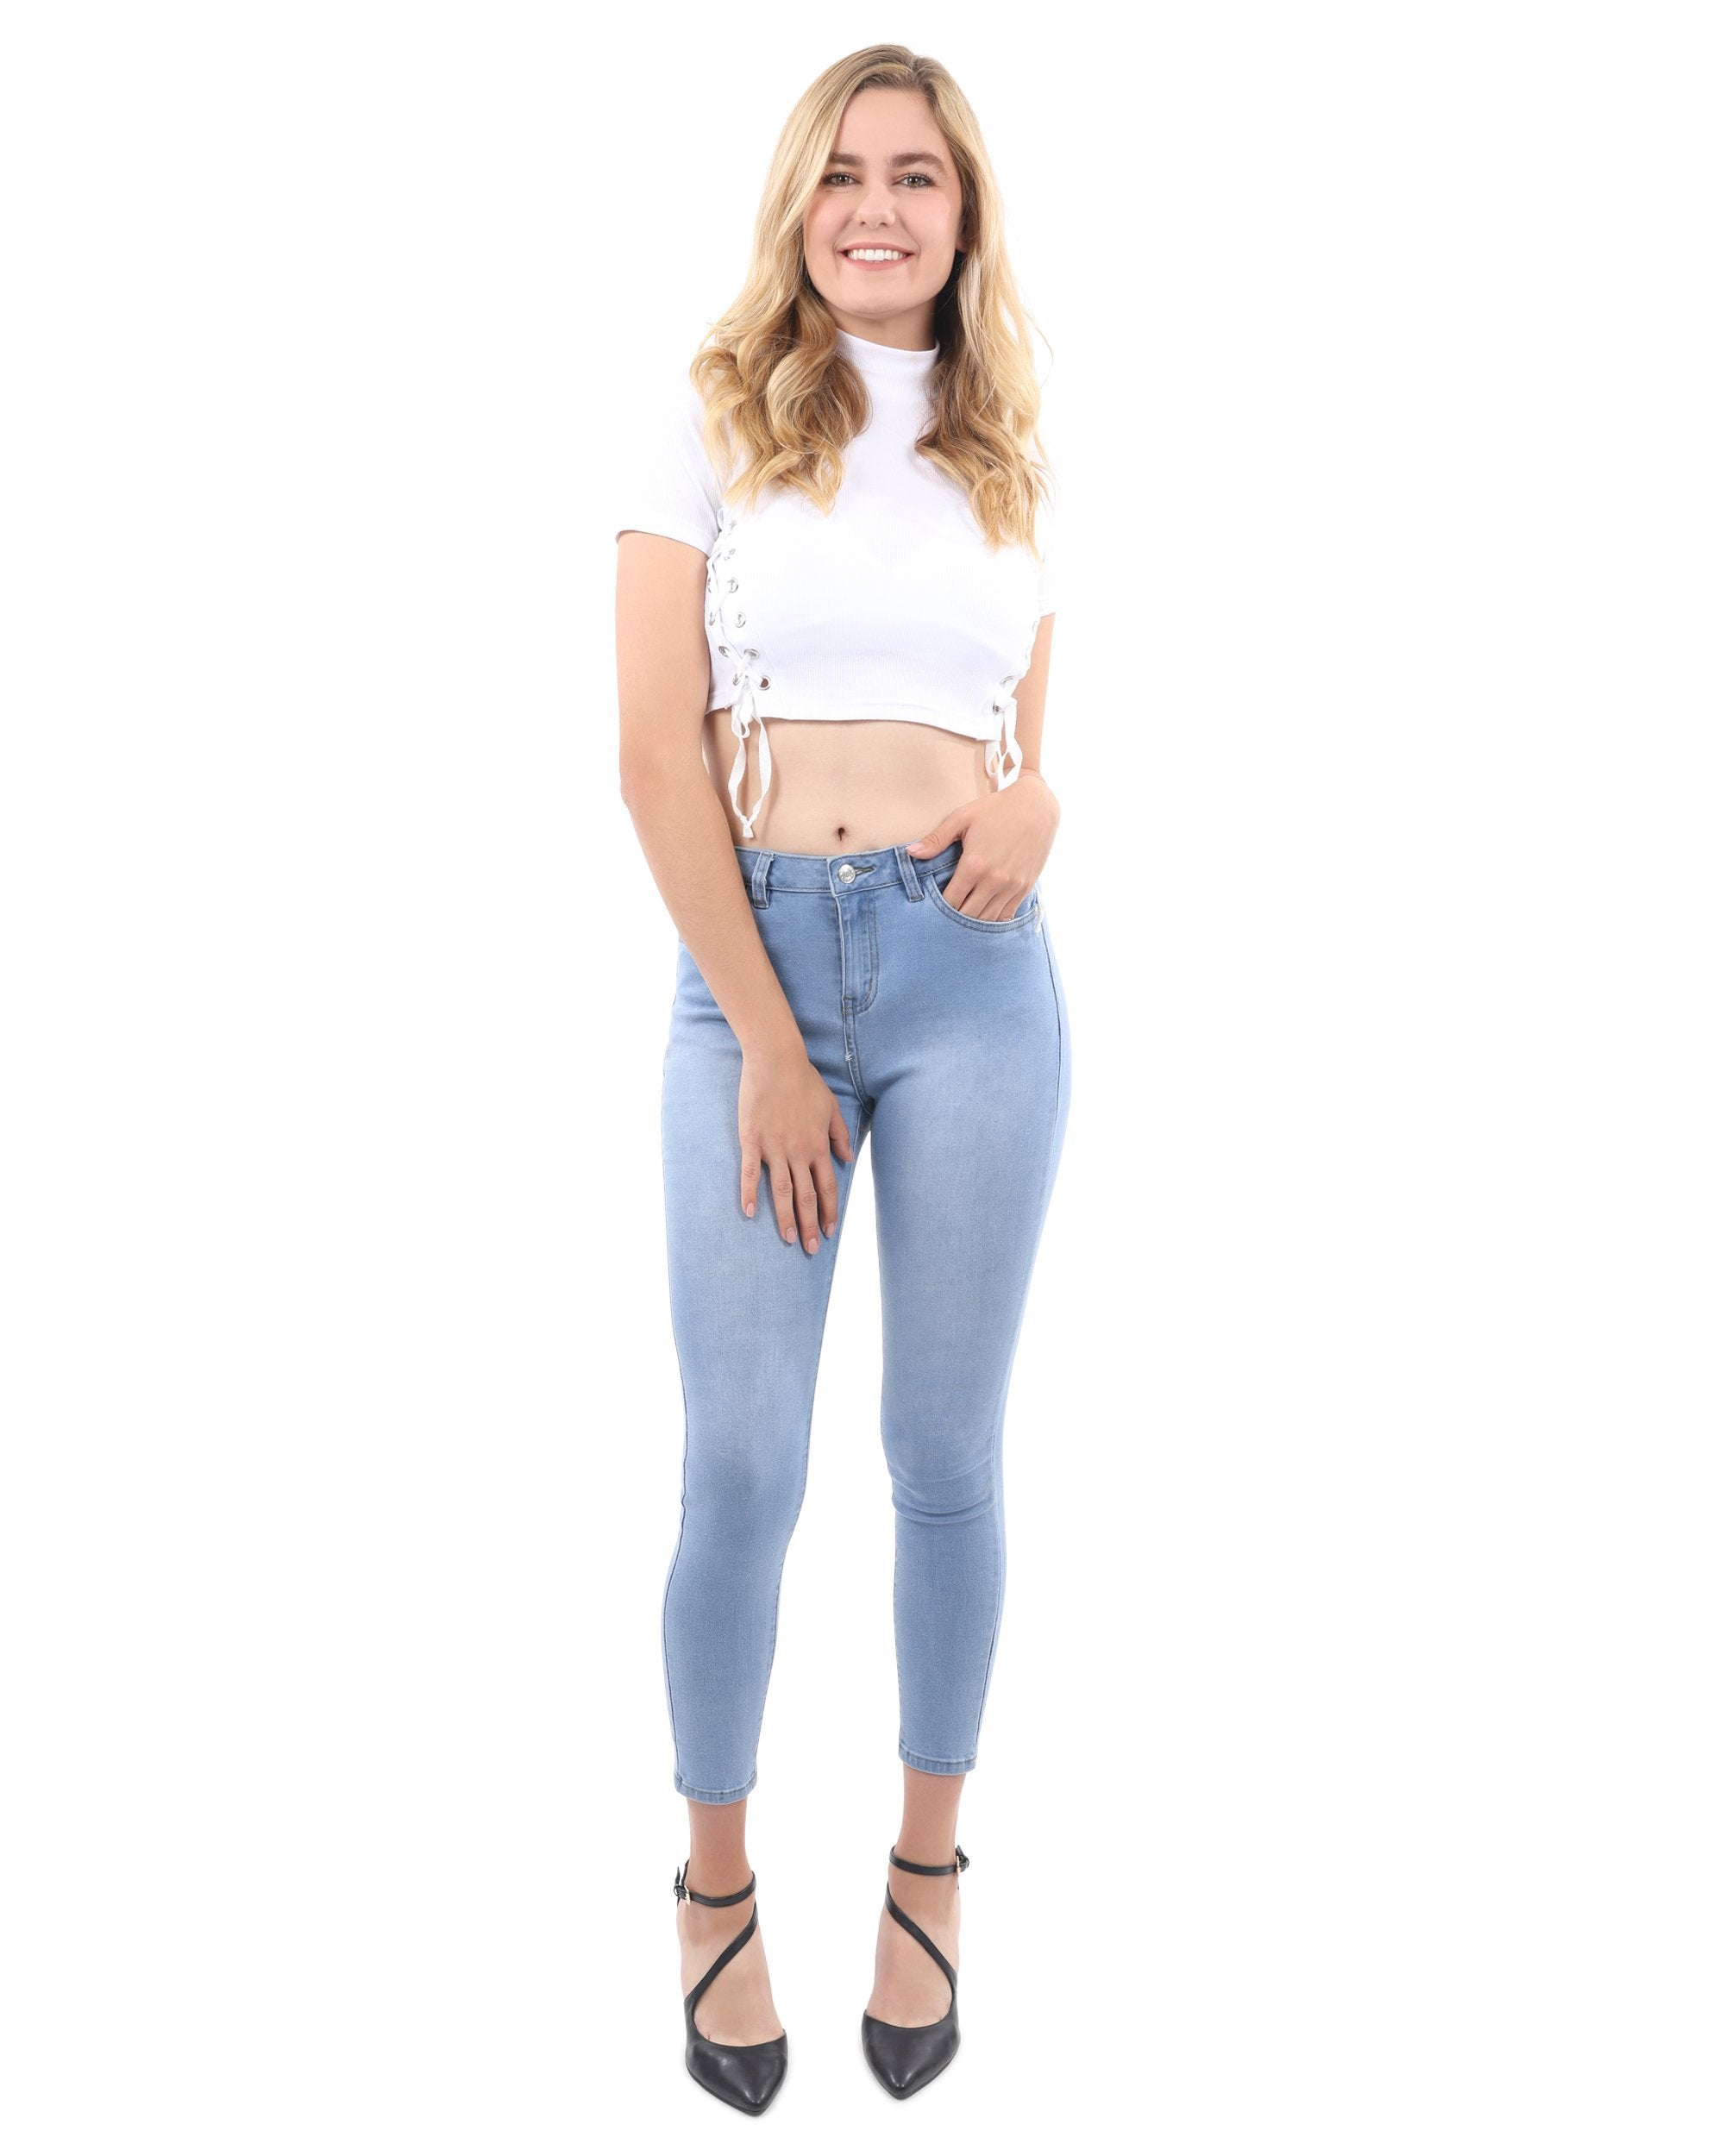 Talus High Waisted Skinny Jeans - Light Blue - TRINQUETZ